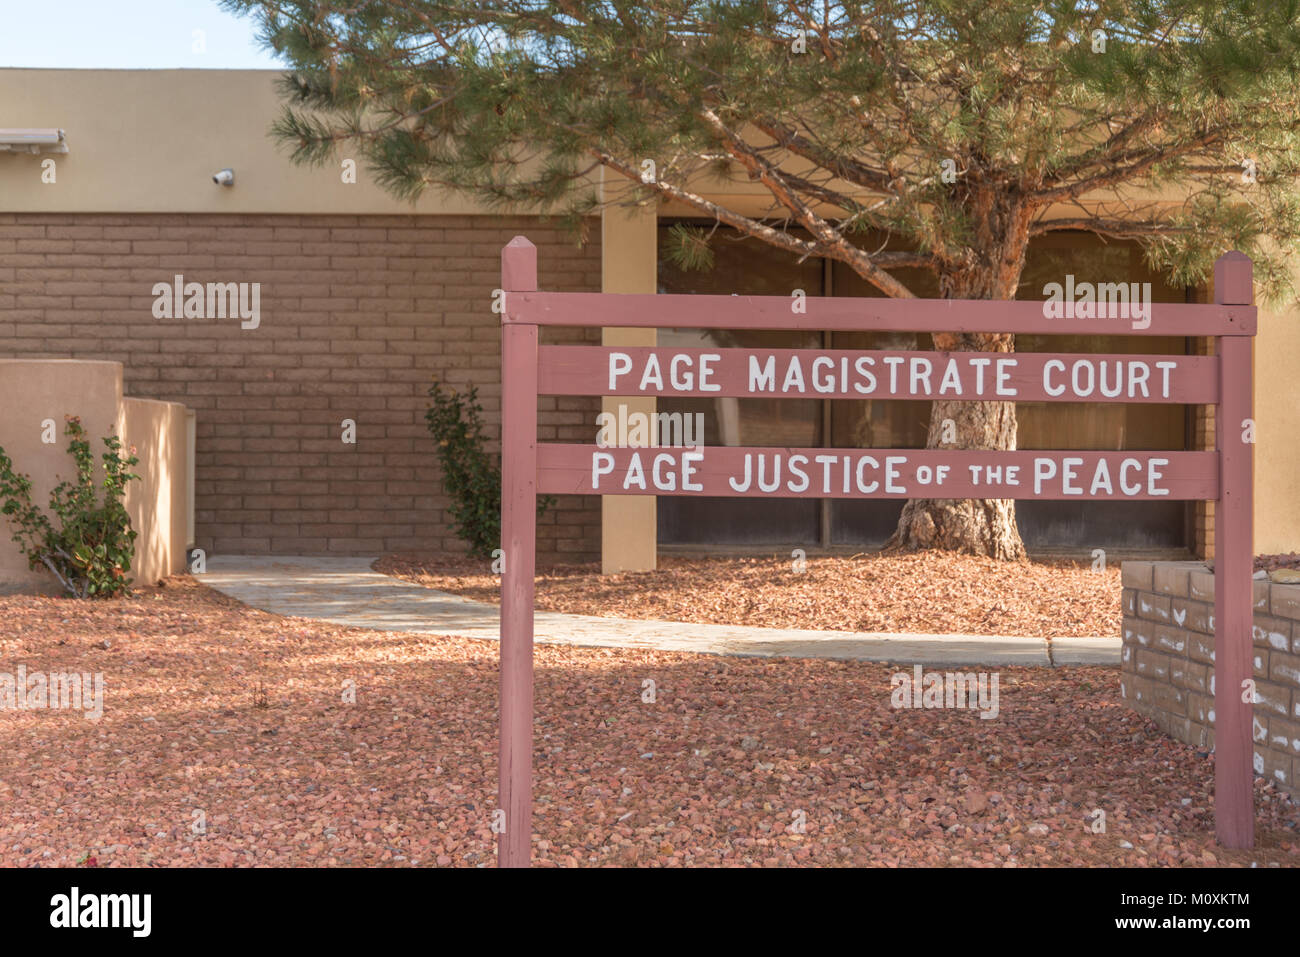 Page Magistrate Court in Page Arizona - Stock Image